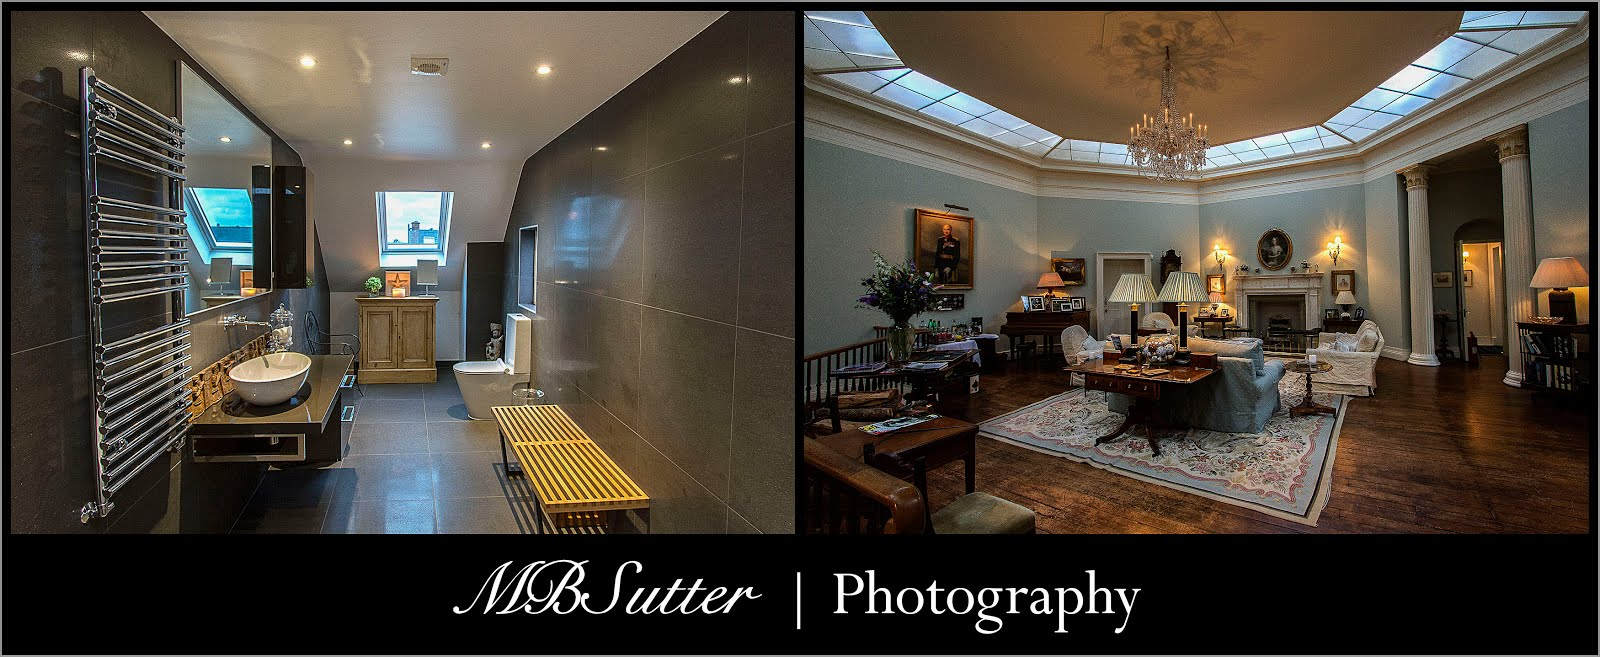 MBSutter | Photography & Design